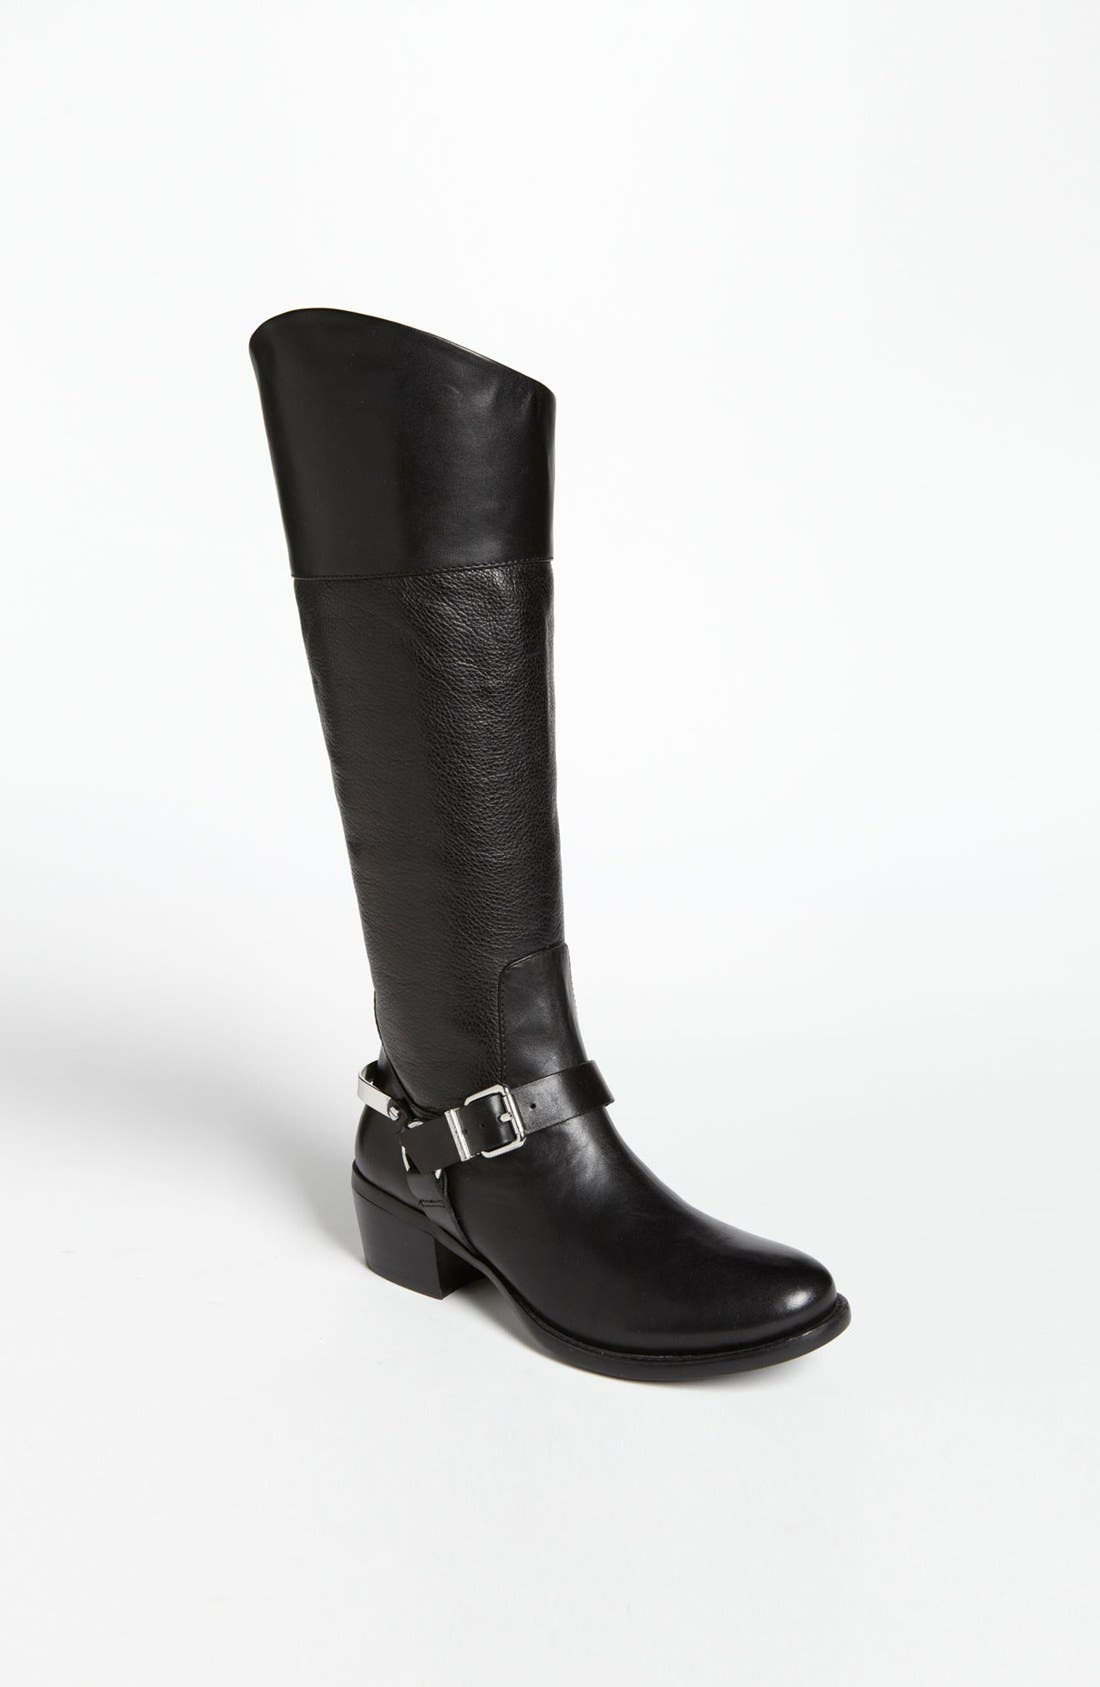 Alternate Image 1 Selected - Vince Camuto 'Brunah' Boot (Nordstrom Exclusive)